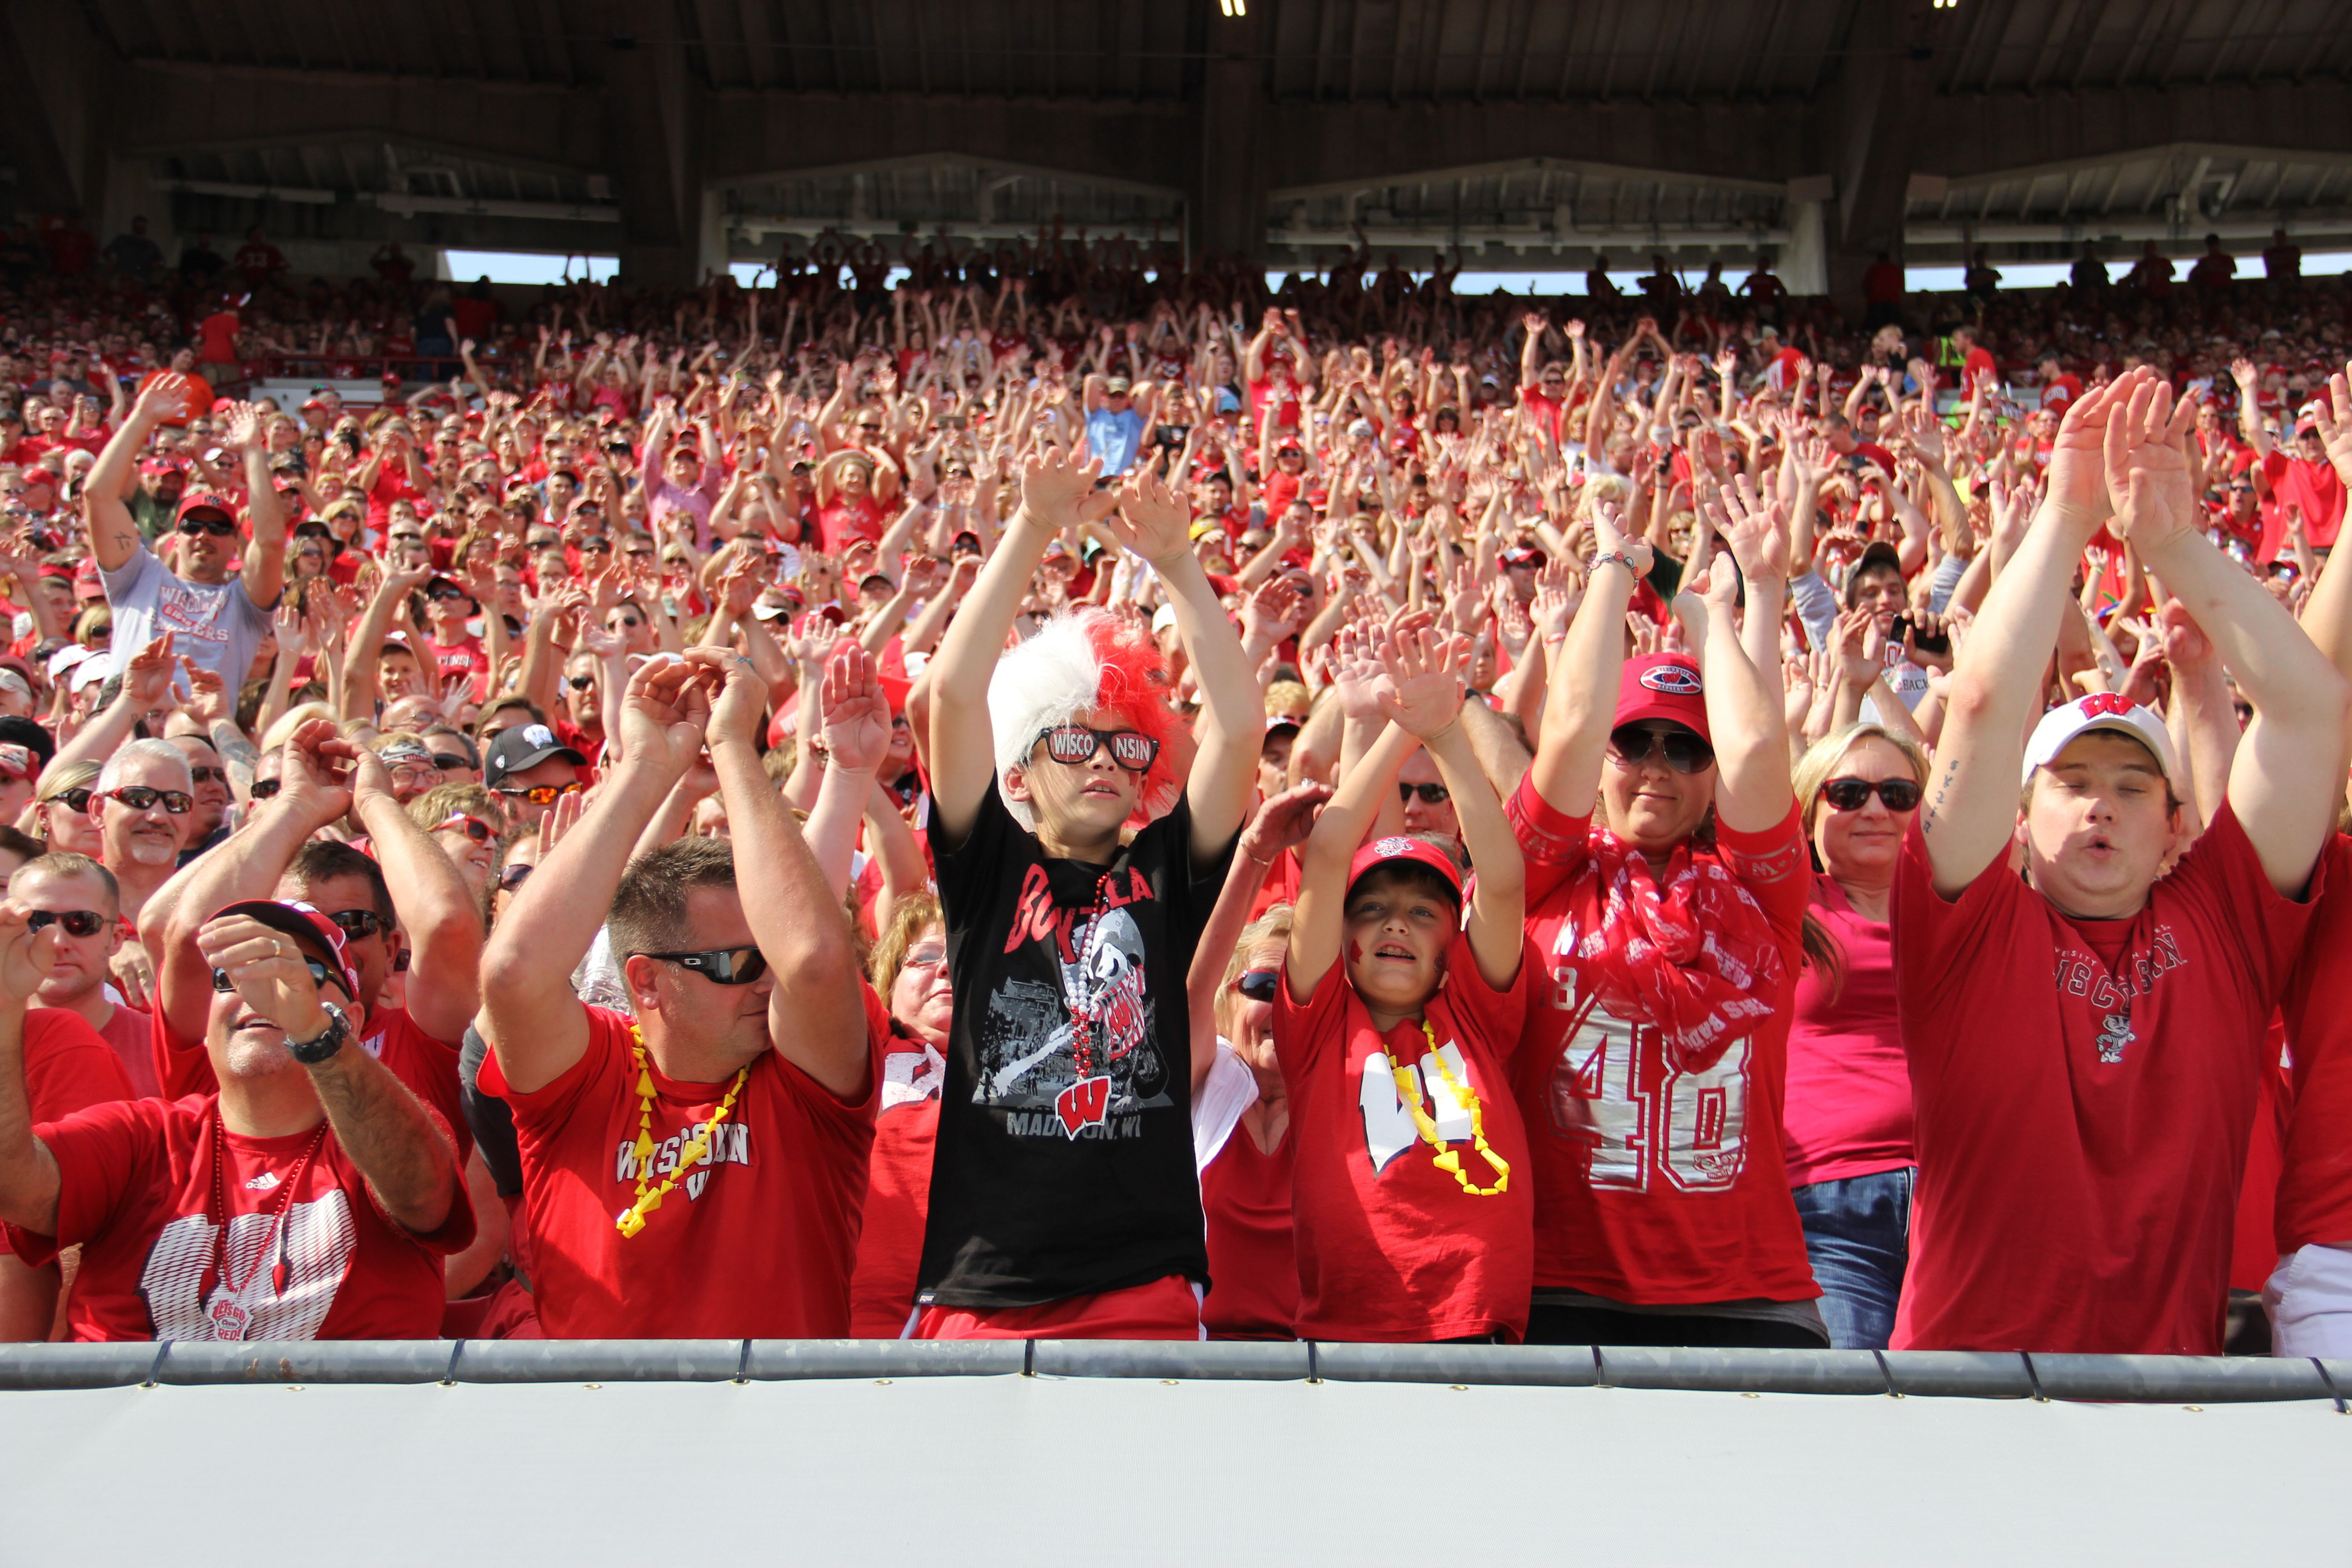 Fans do the wave at Badgers vs. South Florida Sept. 27, 2014.